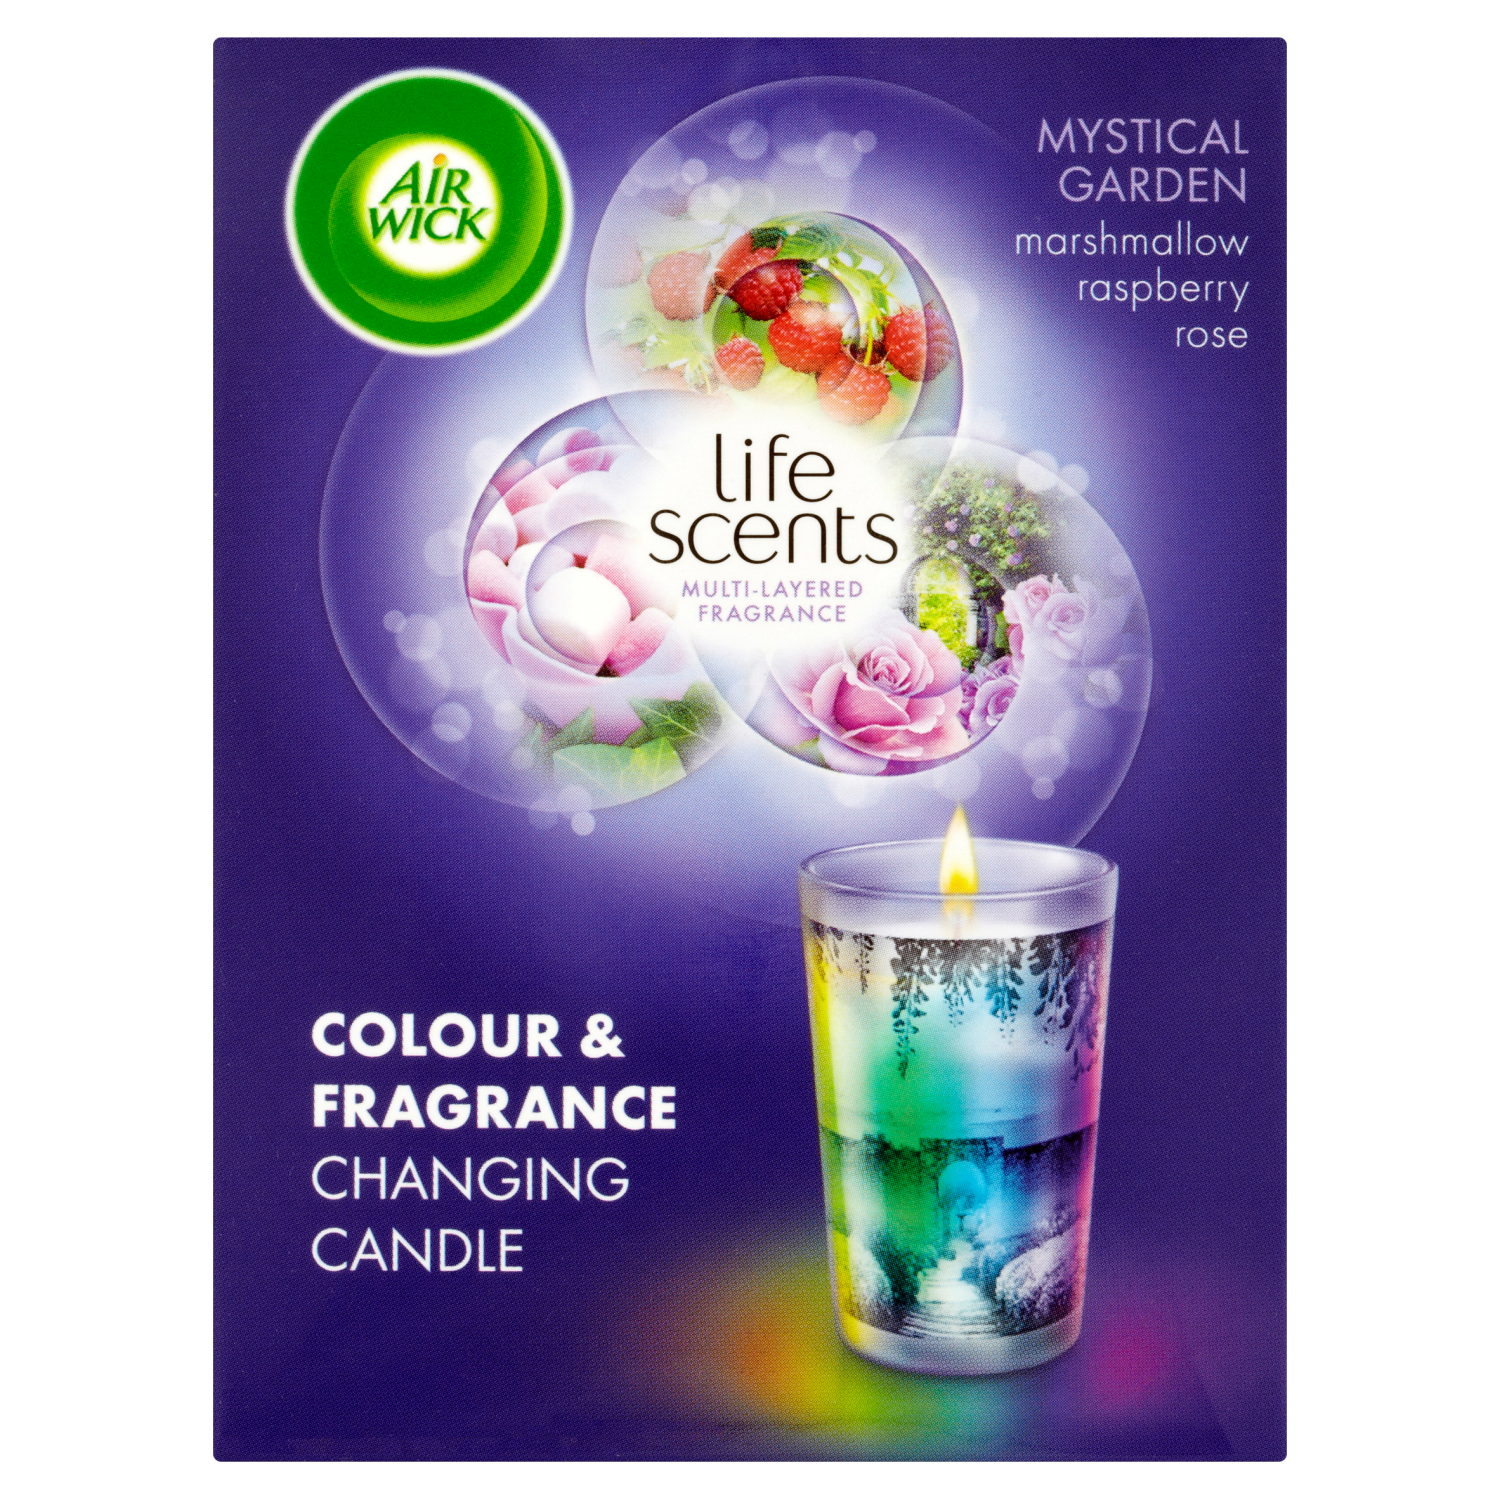 Air Wick Life Scents Mystical Garden